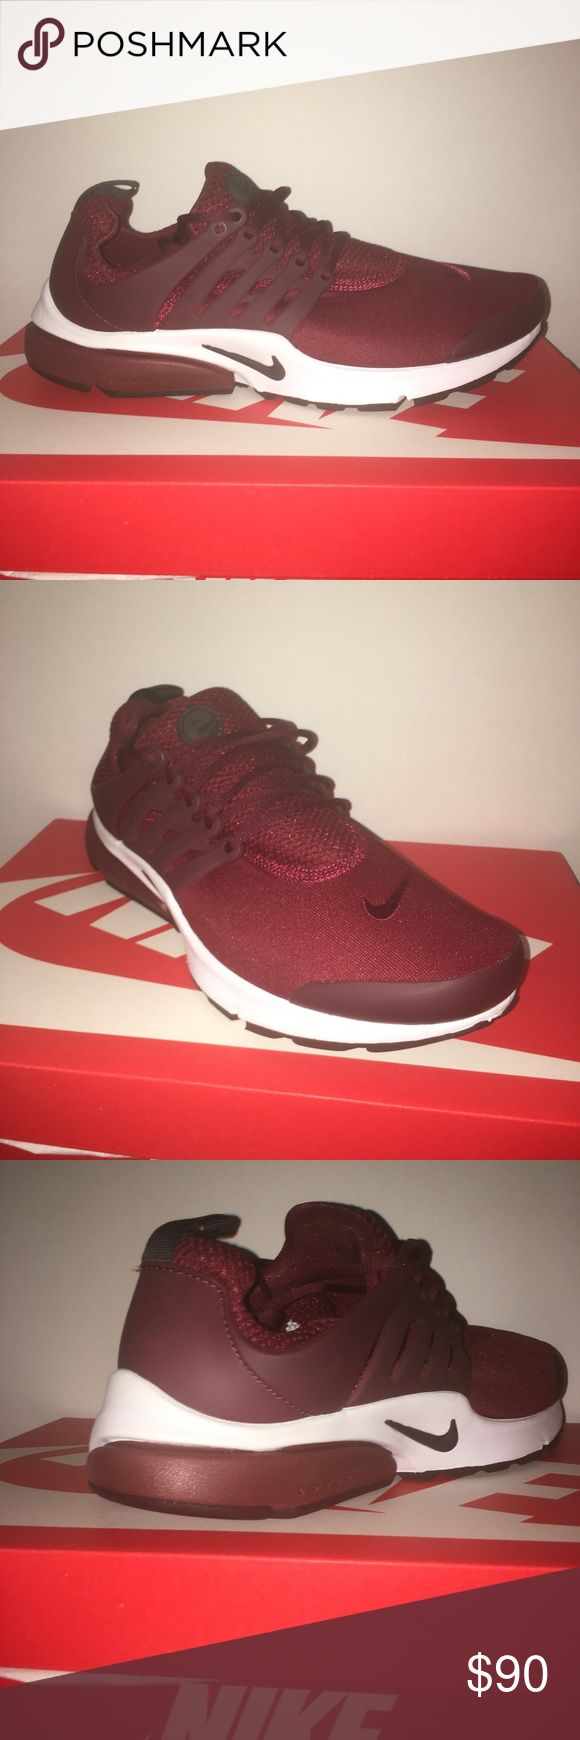 Nike air presto Size 9 never worn , 100% authentic ships next day ! Nike Shoes Sneakers